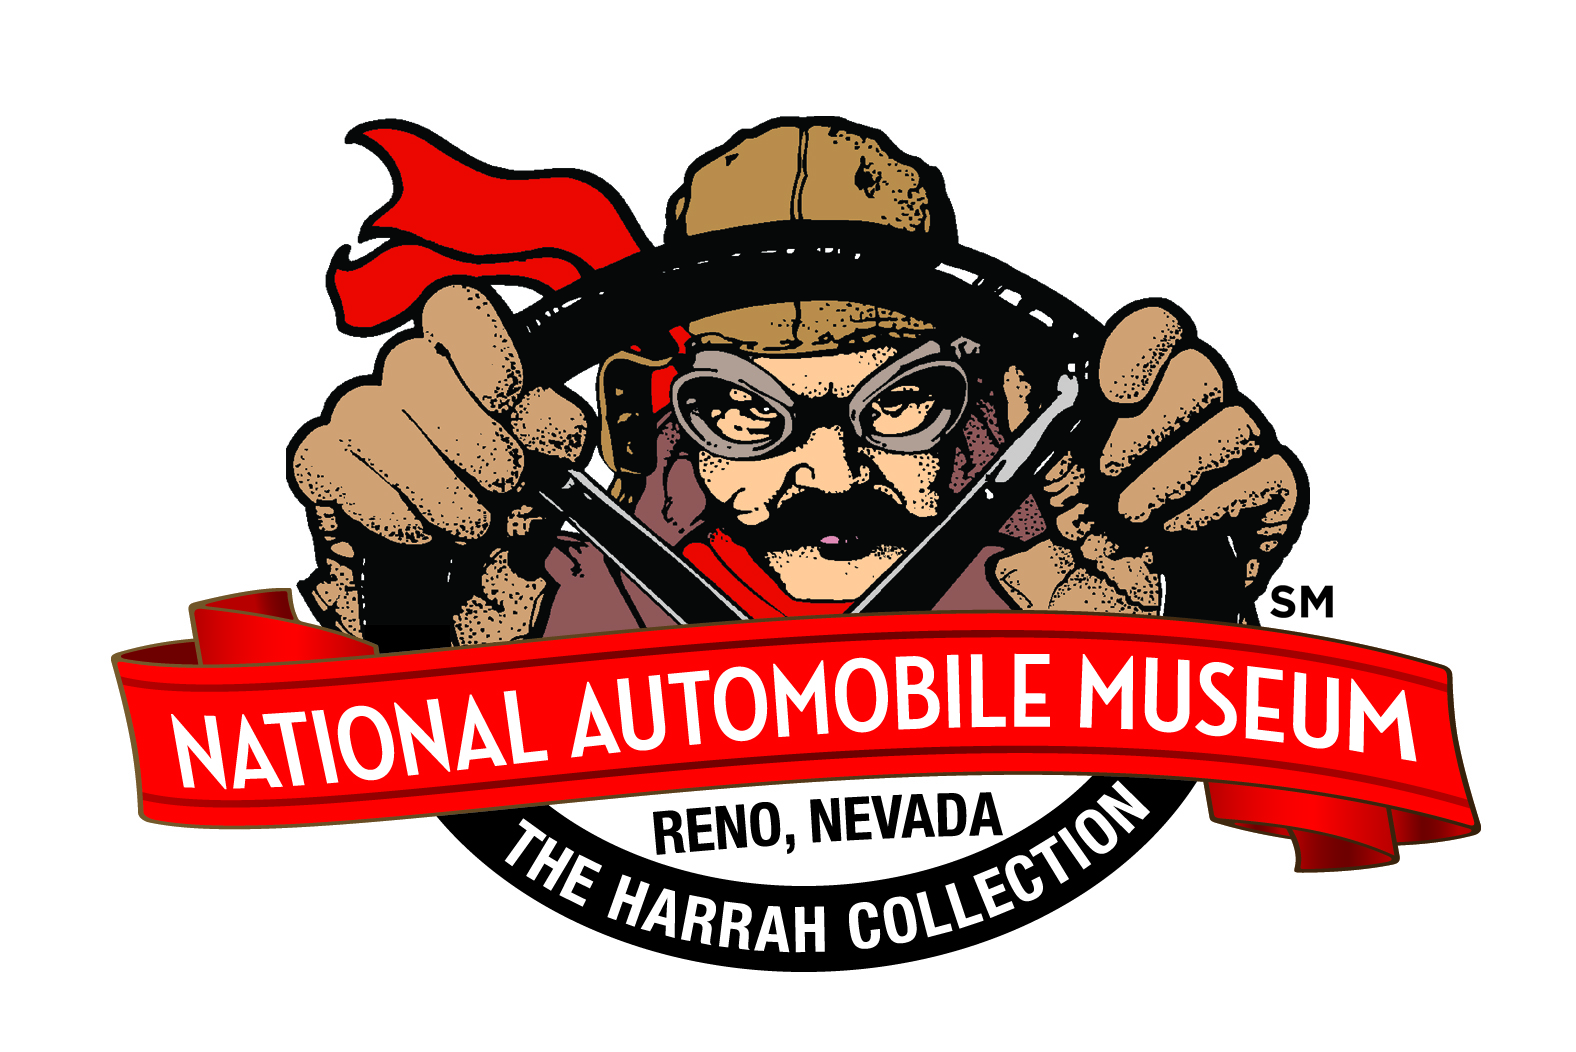 http://www.automuseum.org/